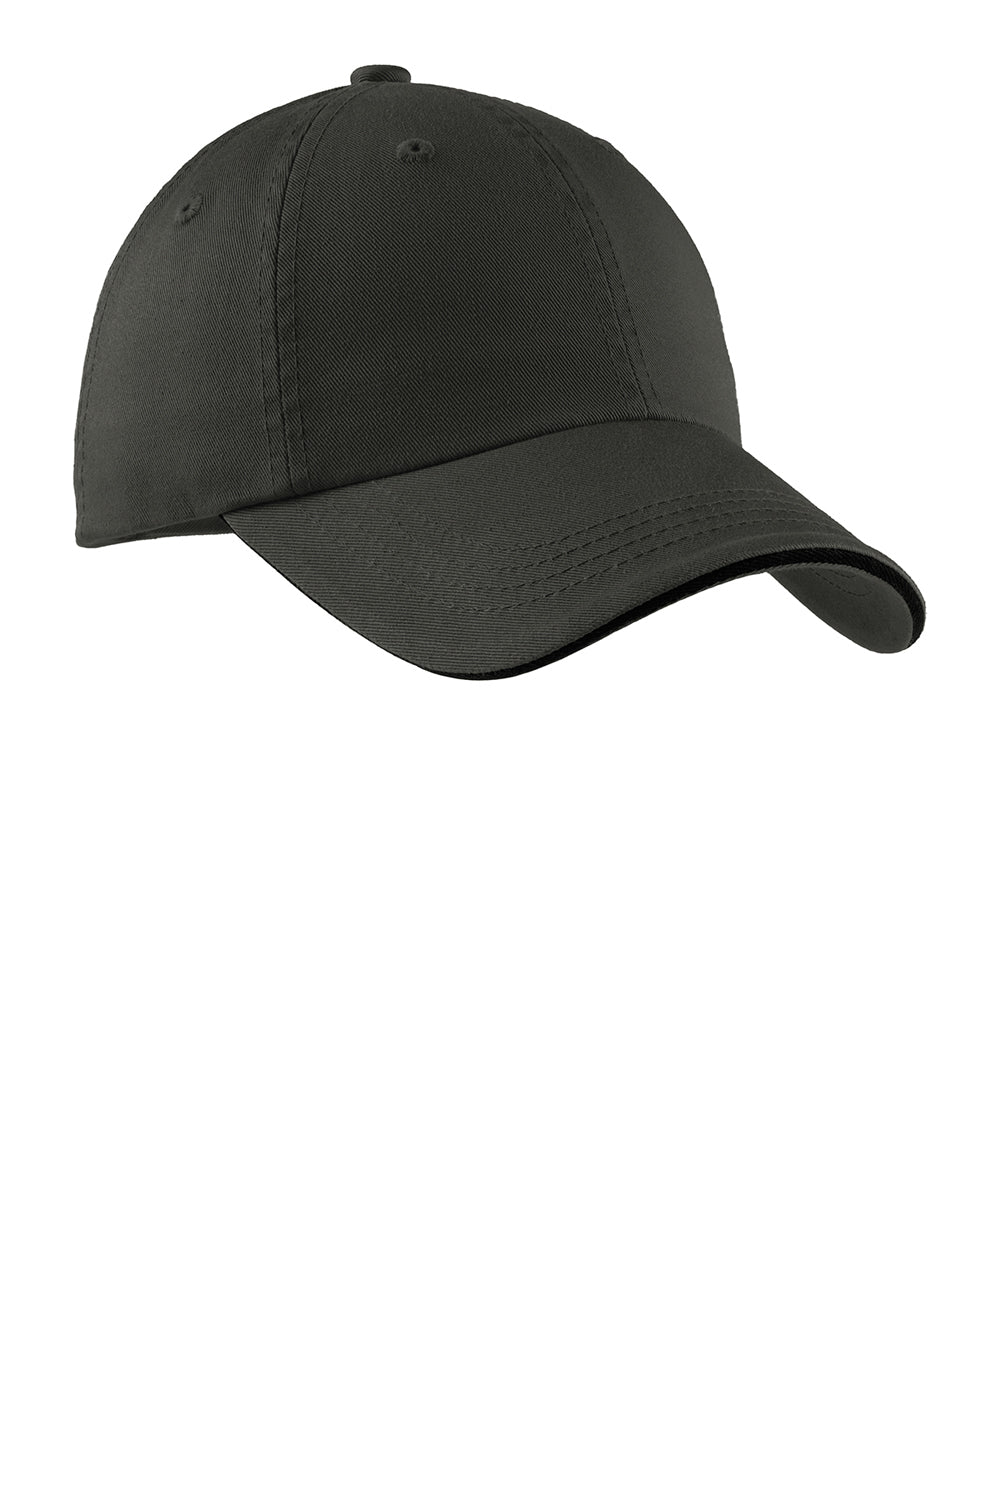 Port Authority C830 Mens Adjustable Hat Charcoal Grey/Black Front